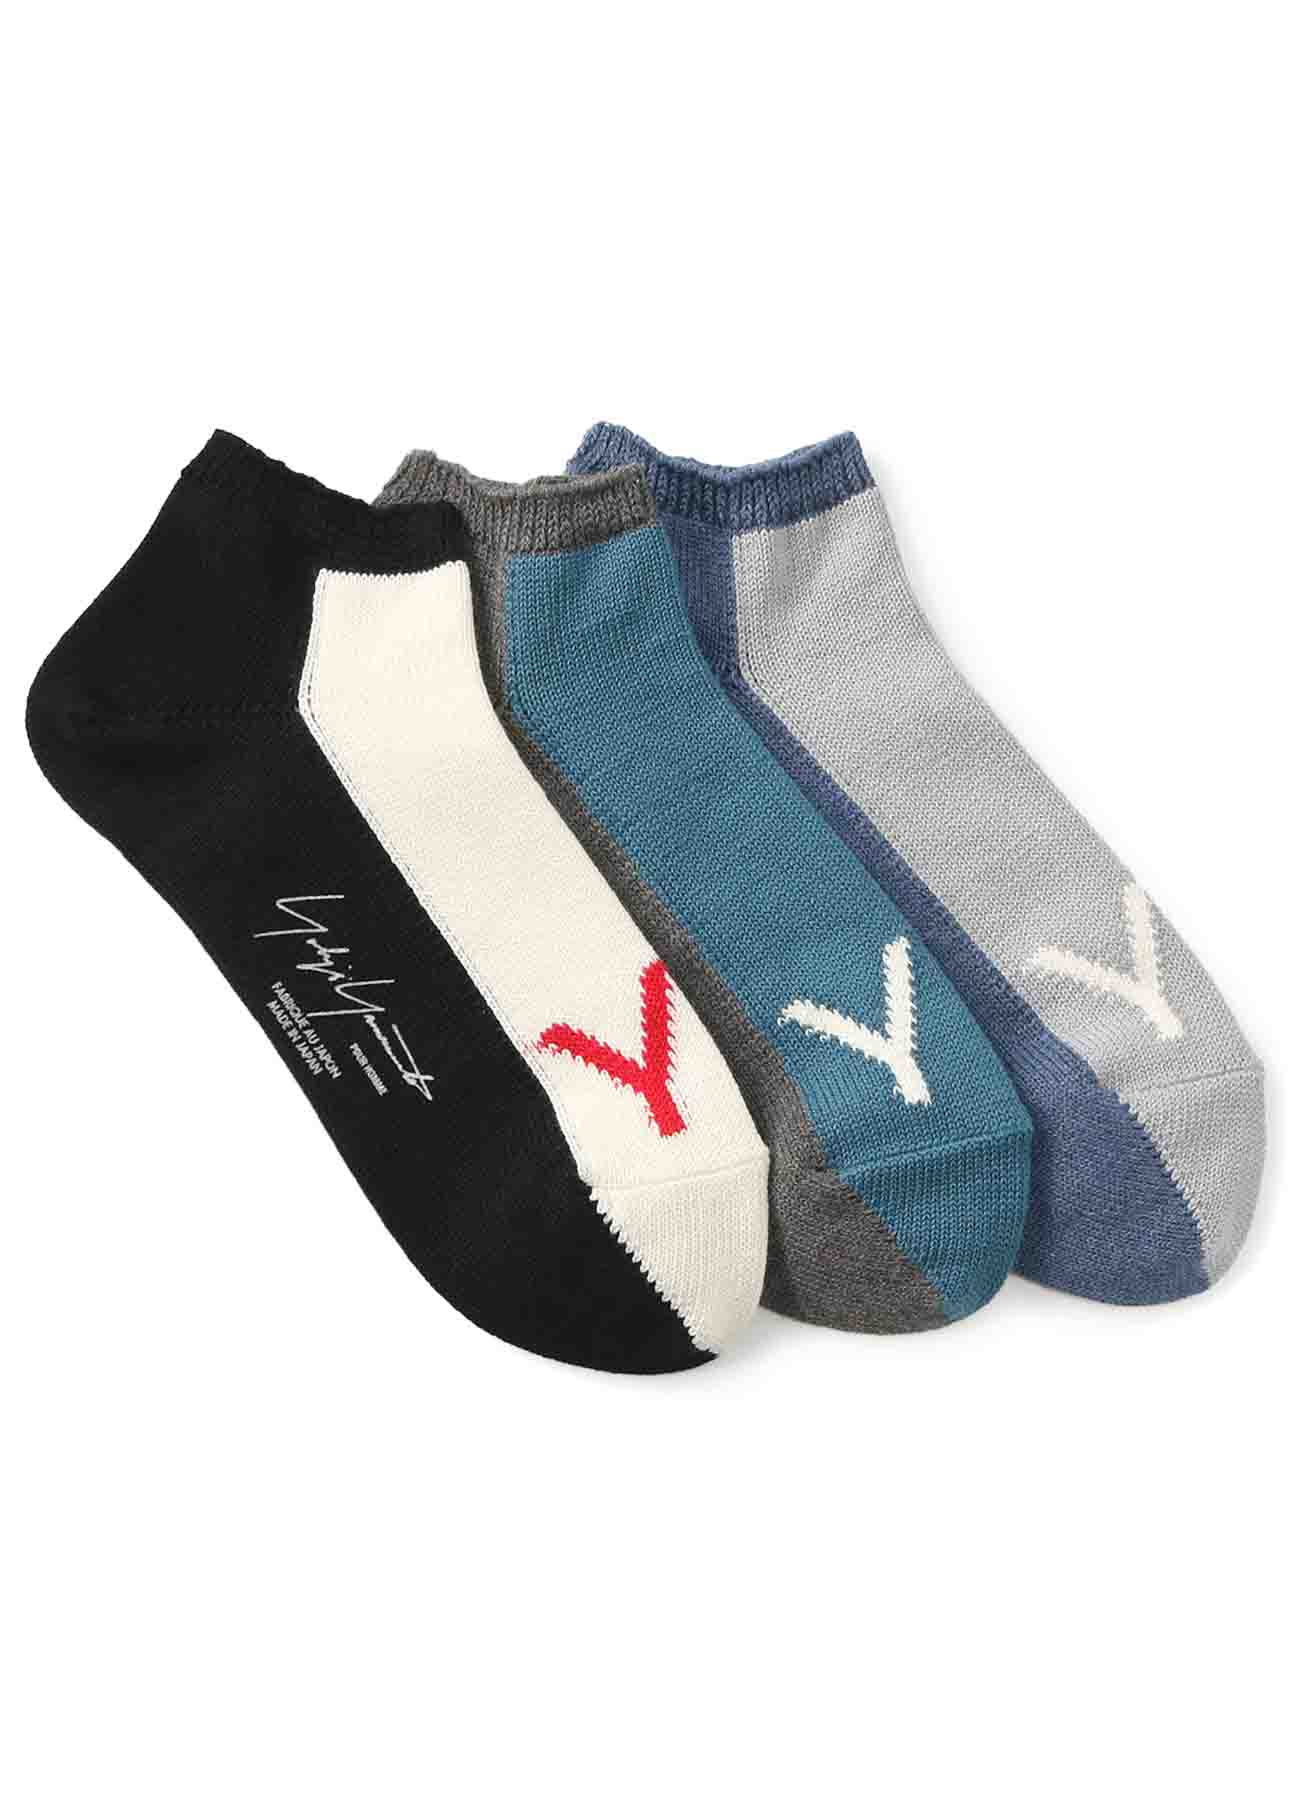 30/2 C/INTERSIA 2 TONE SHORT SOCKS